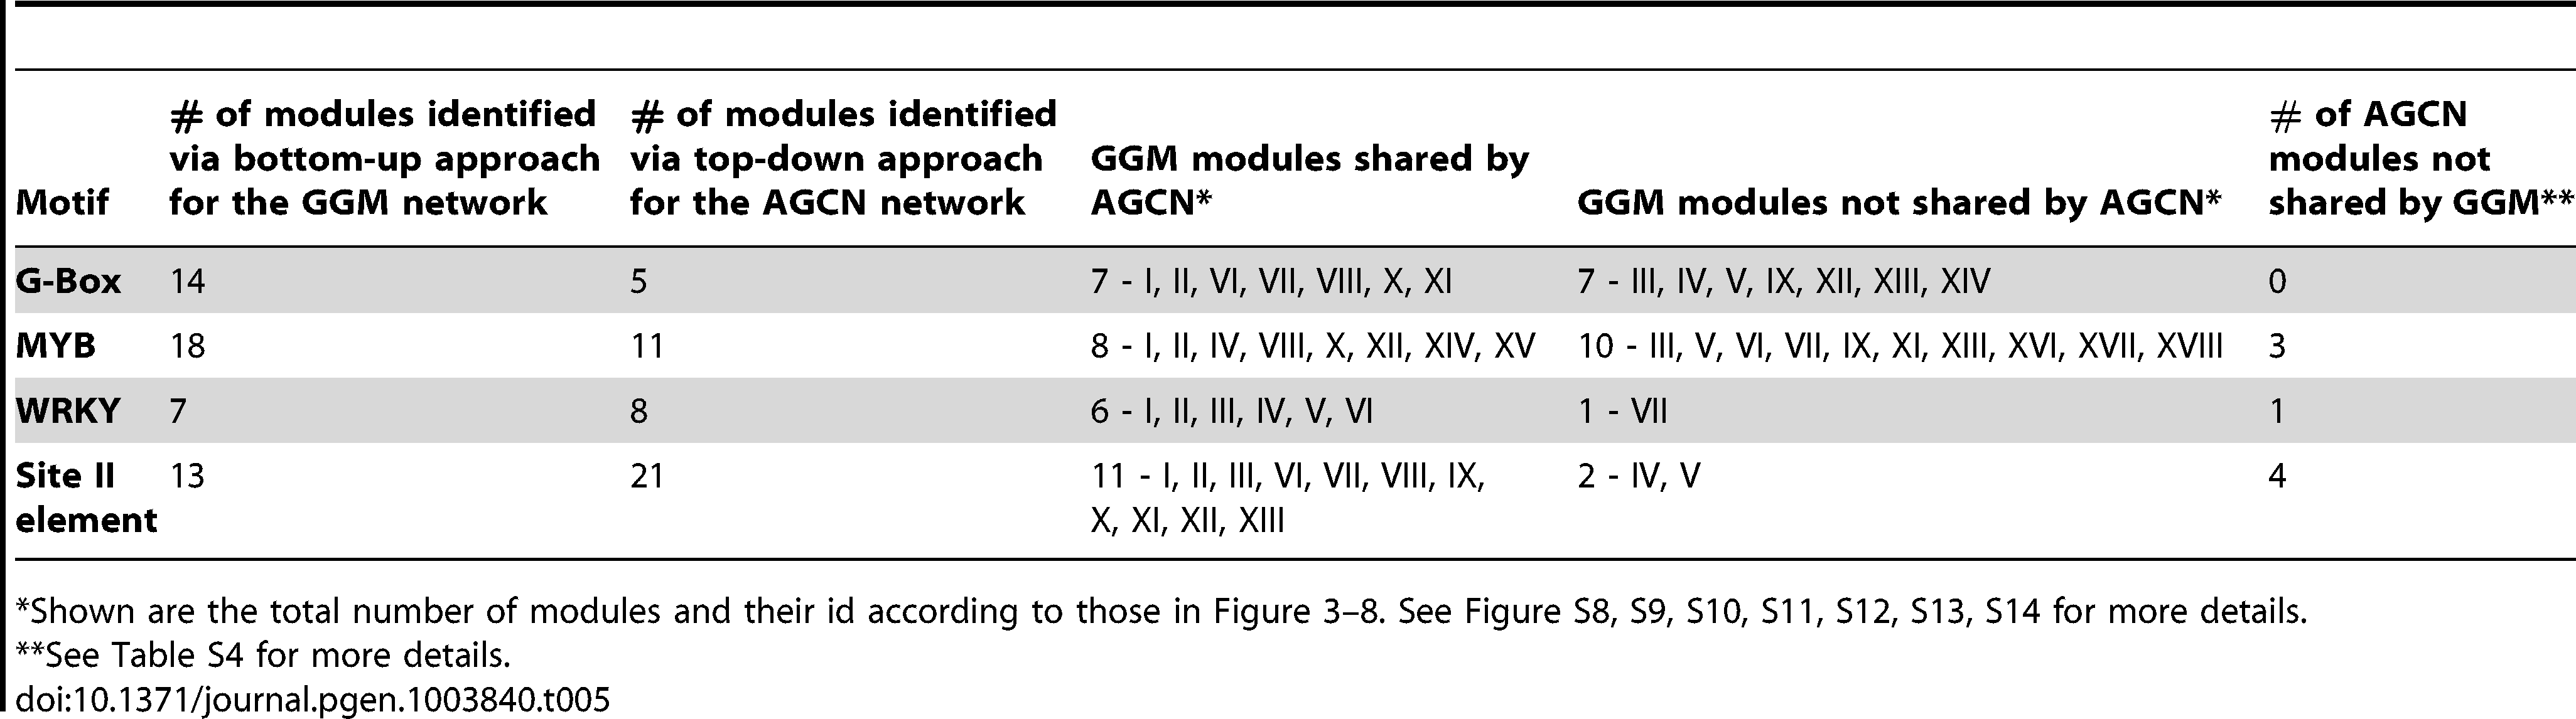 Comparison between the bottom-up approach (for GGM network) with the top-down approach (for AGCN network) on module discovery.